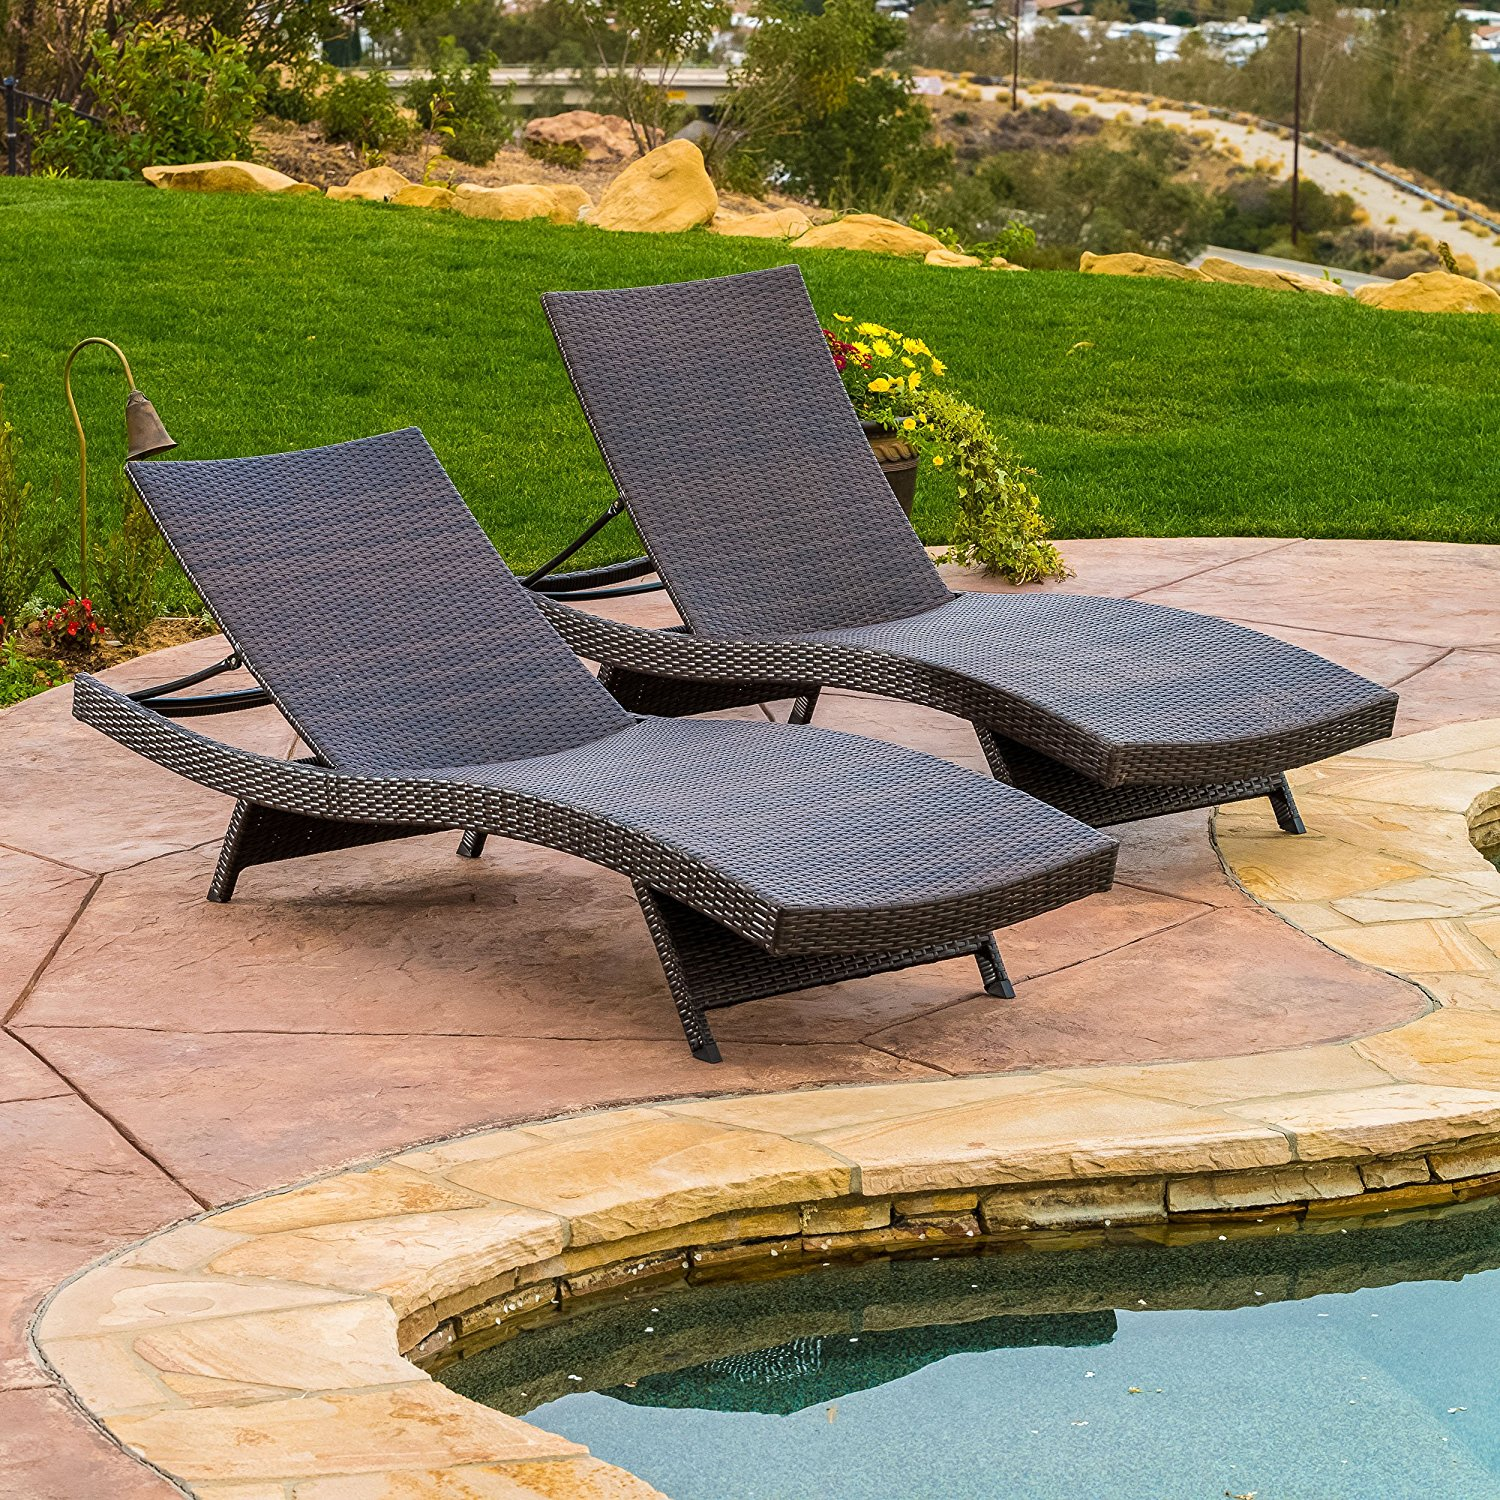 GDF Lakeport Adjustable Chaise Lounge Chair – Available in 3 Sizes & 18 Colors